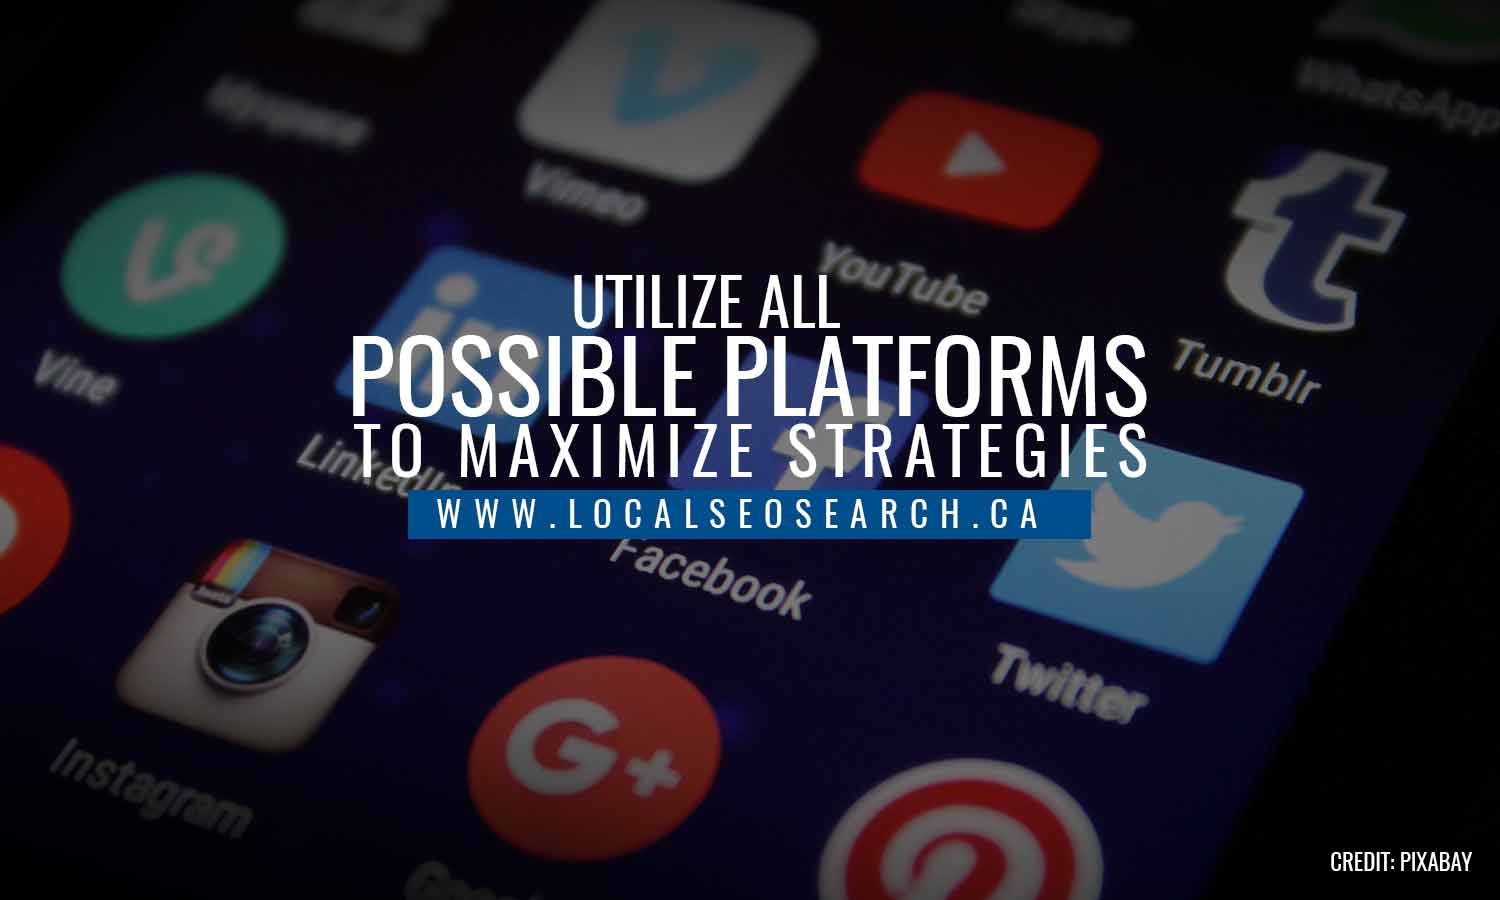 Utilize all possible platforms to maximize strategies